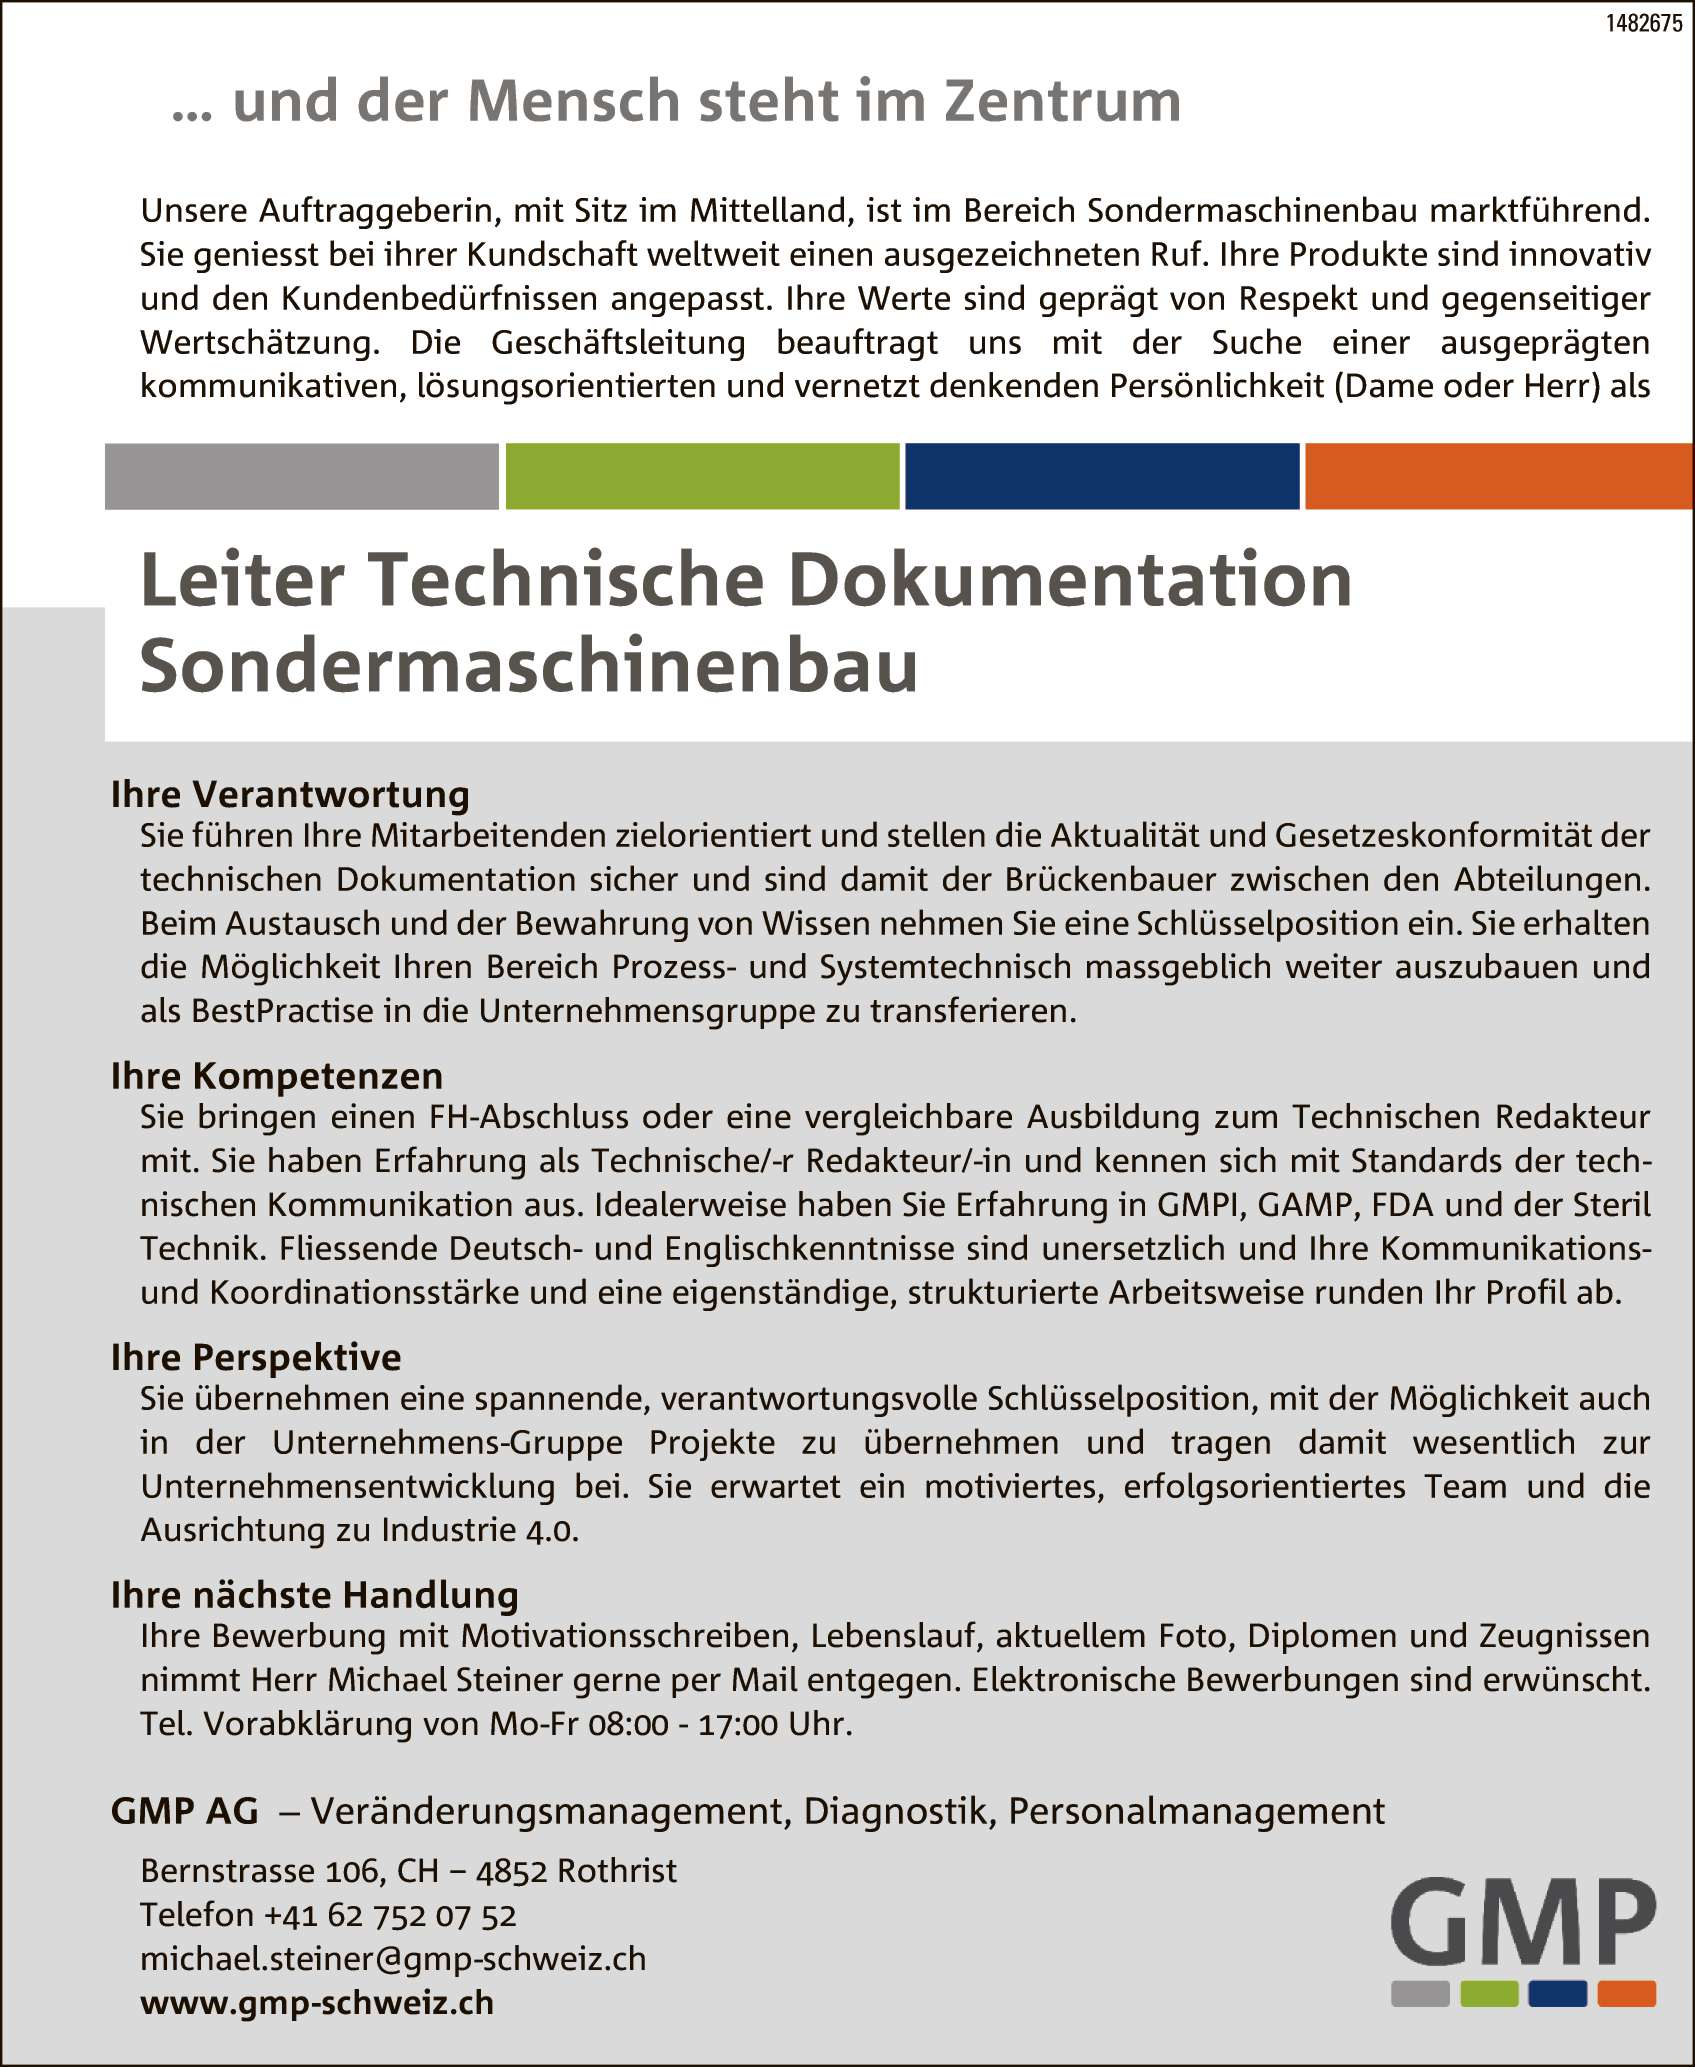 Nett Optimaler Lebenslauf Umass Fotos - Entry Level Resume Vorlagen ...